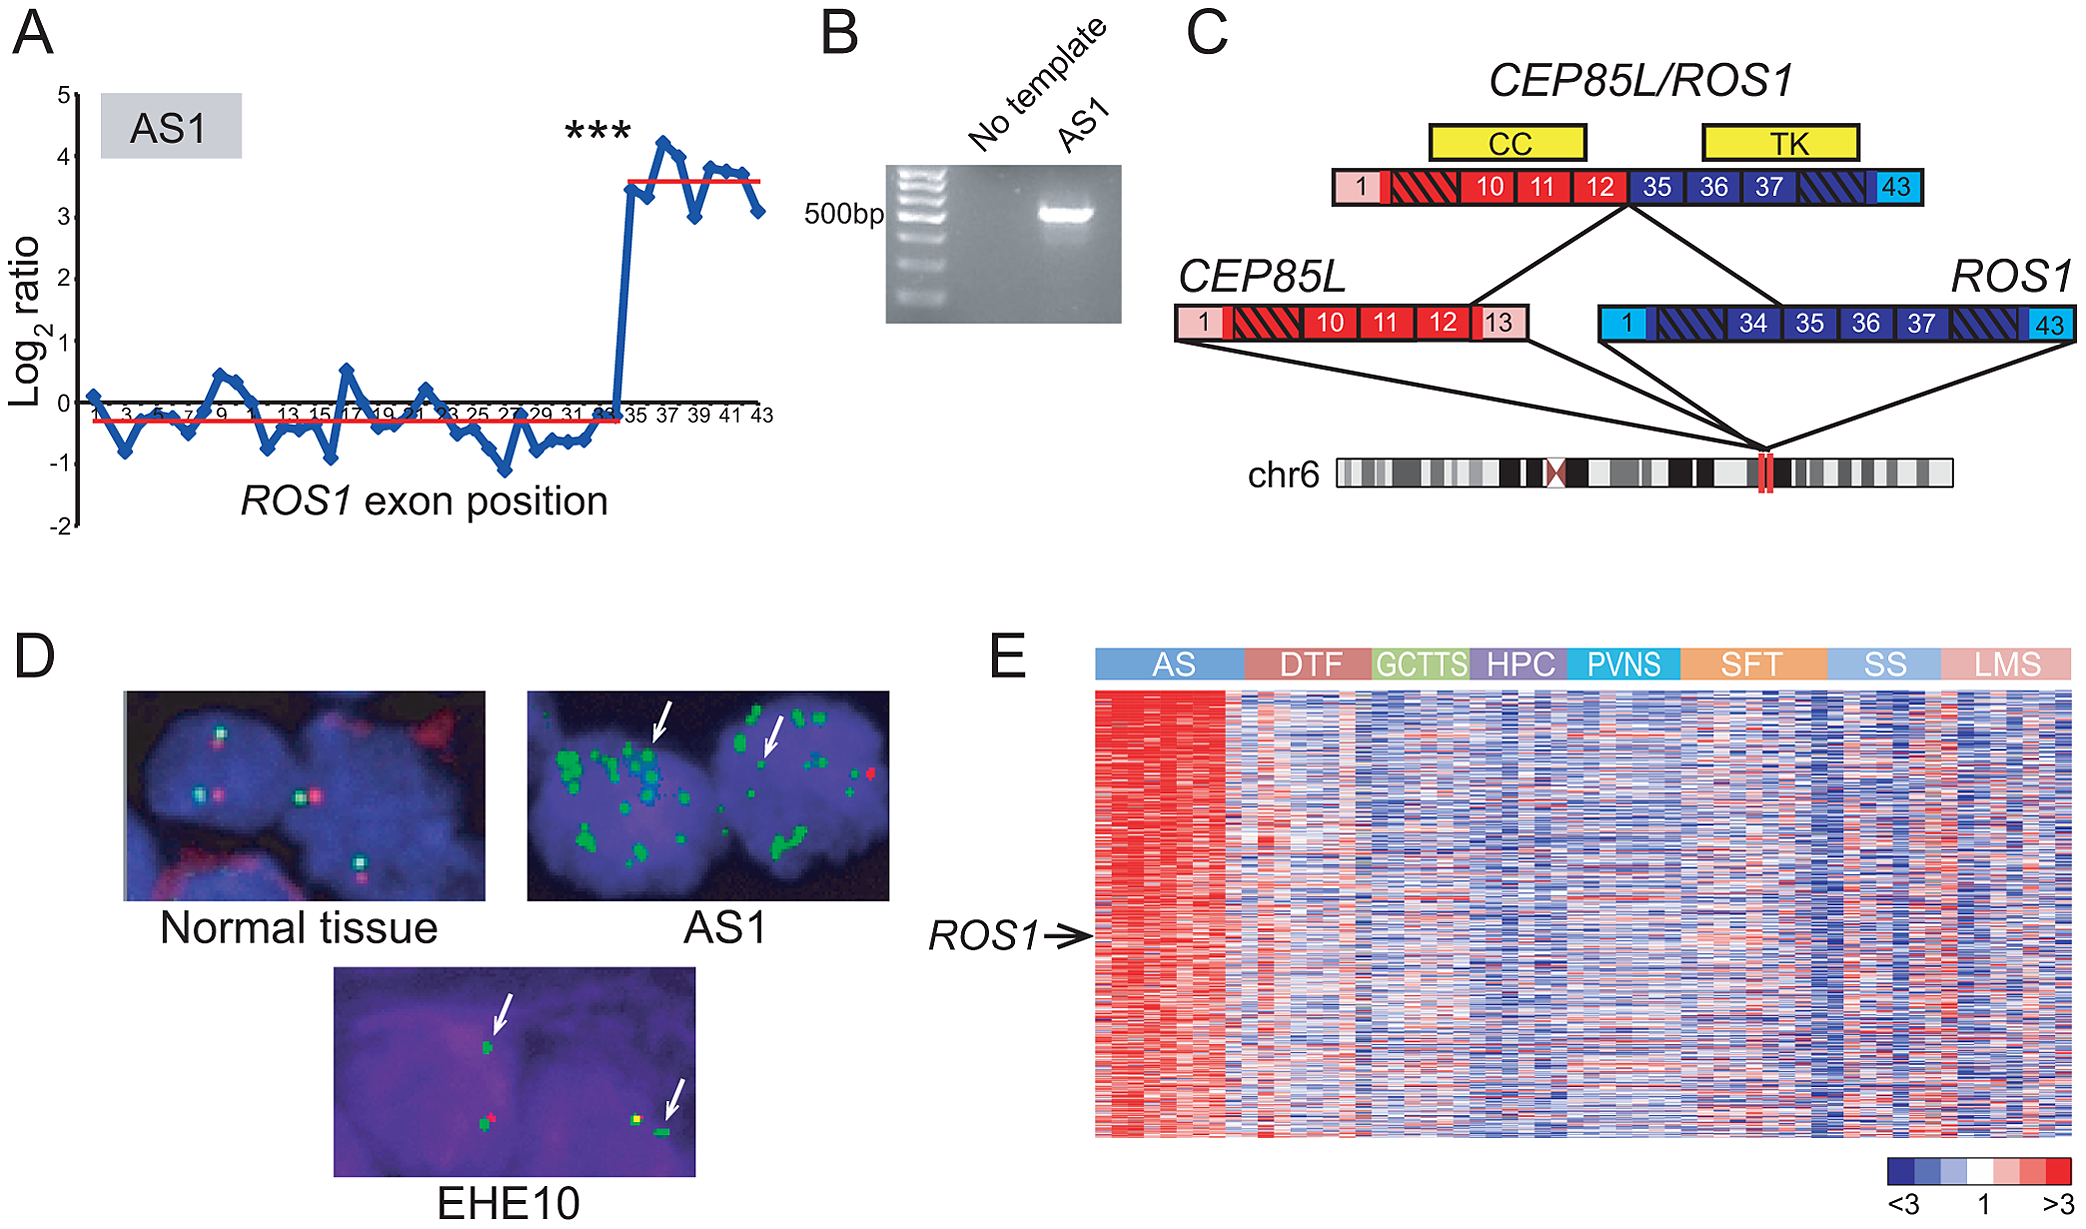 Discovery and characterization of <i>CEP85L/ROS1</i> in angiosarcoma.